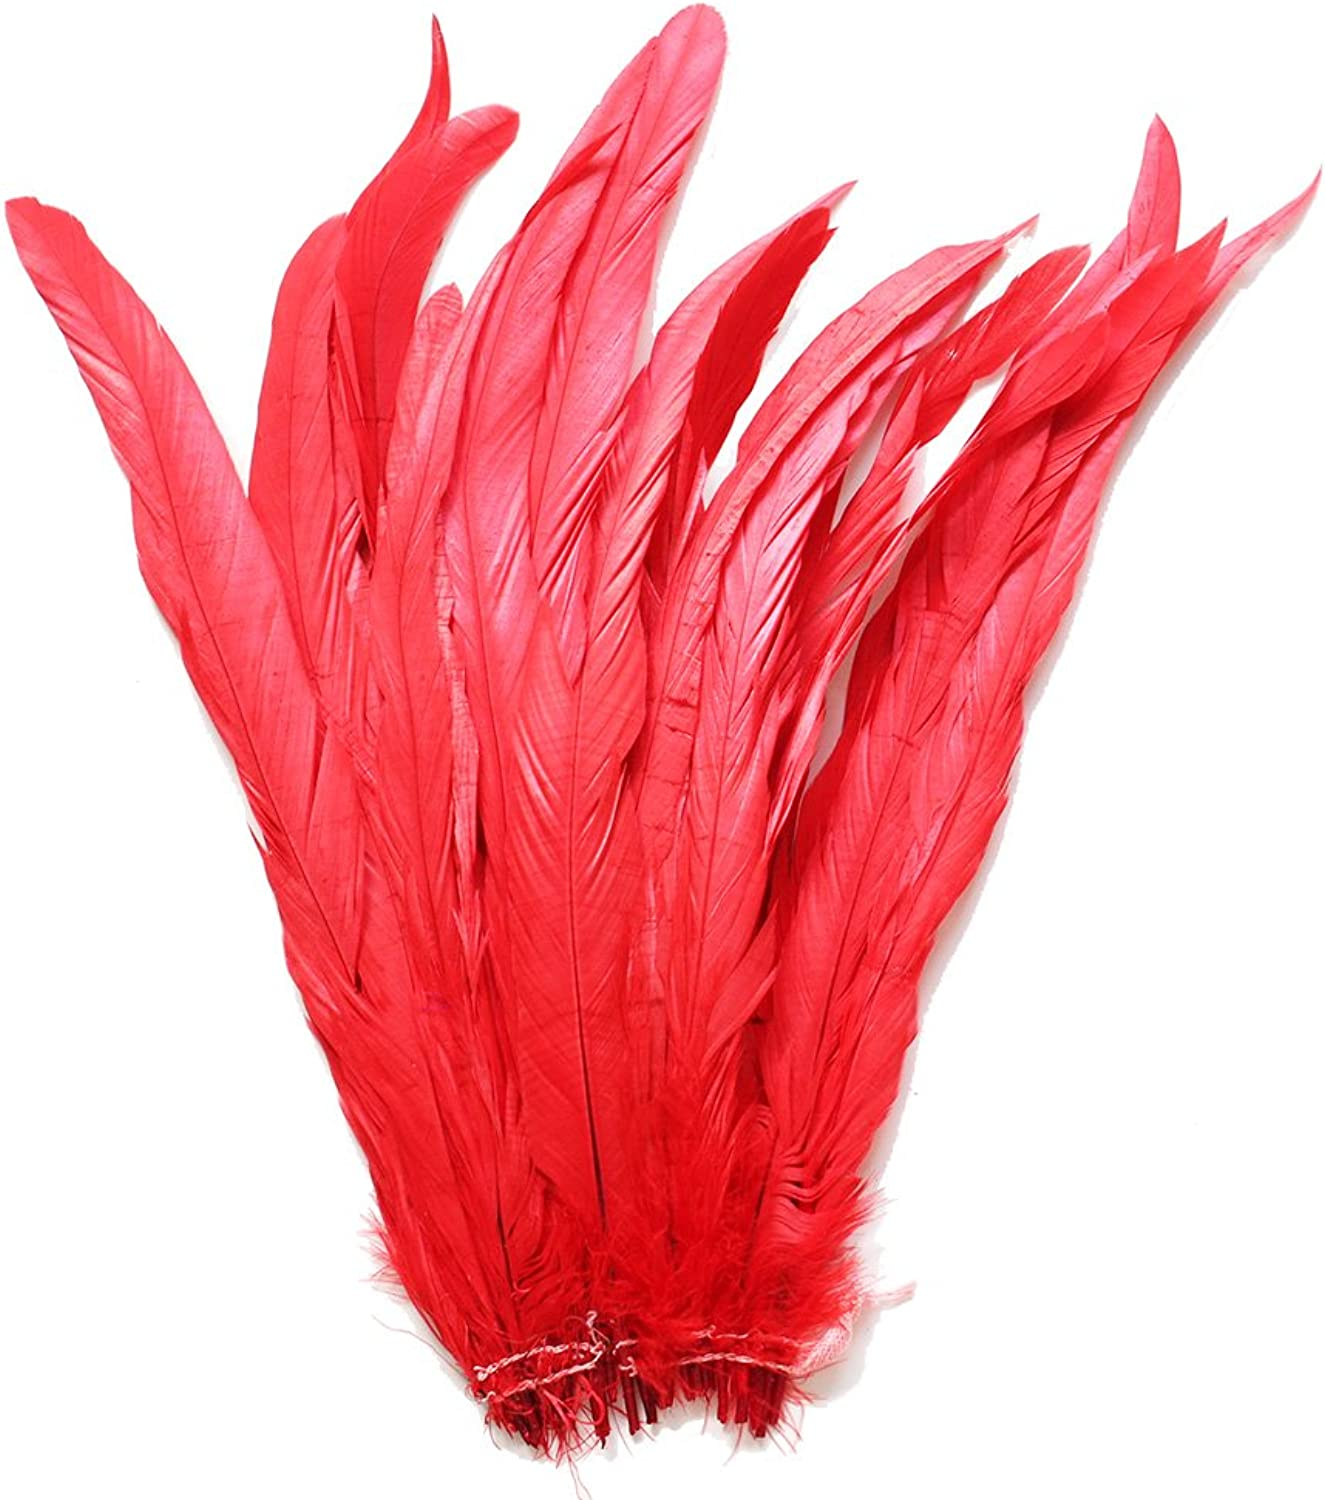 conveniente 25pcs 12-14 Bleach-Dyed Bleach-Dyed Bleach-Dyed Rooster Coque Tail Feathers, 16+ Colors to Pick Up (rojo) by Cynthia's Feathers  mejor reputación